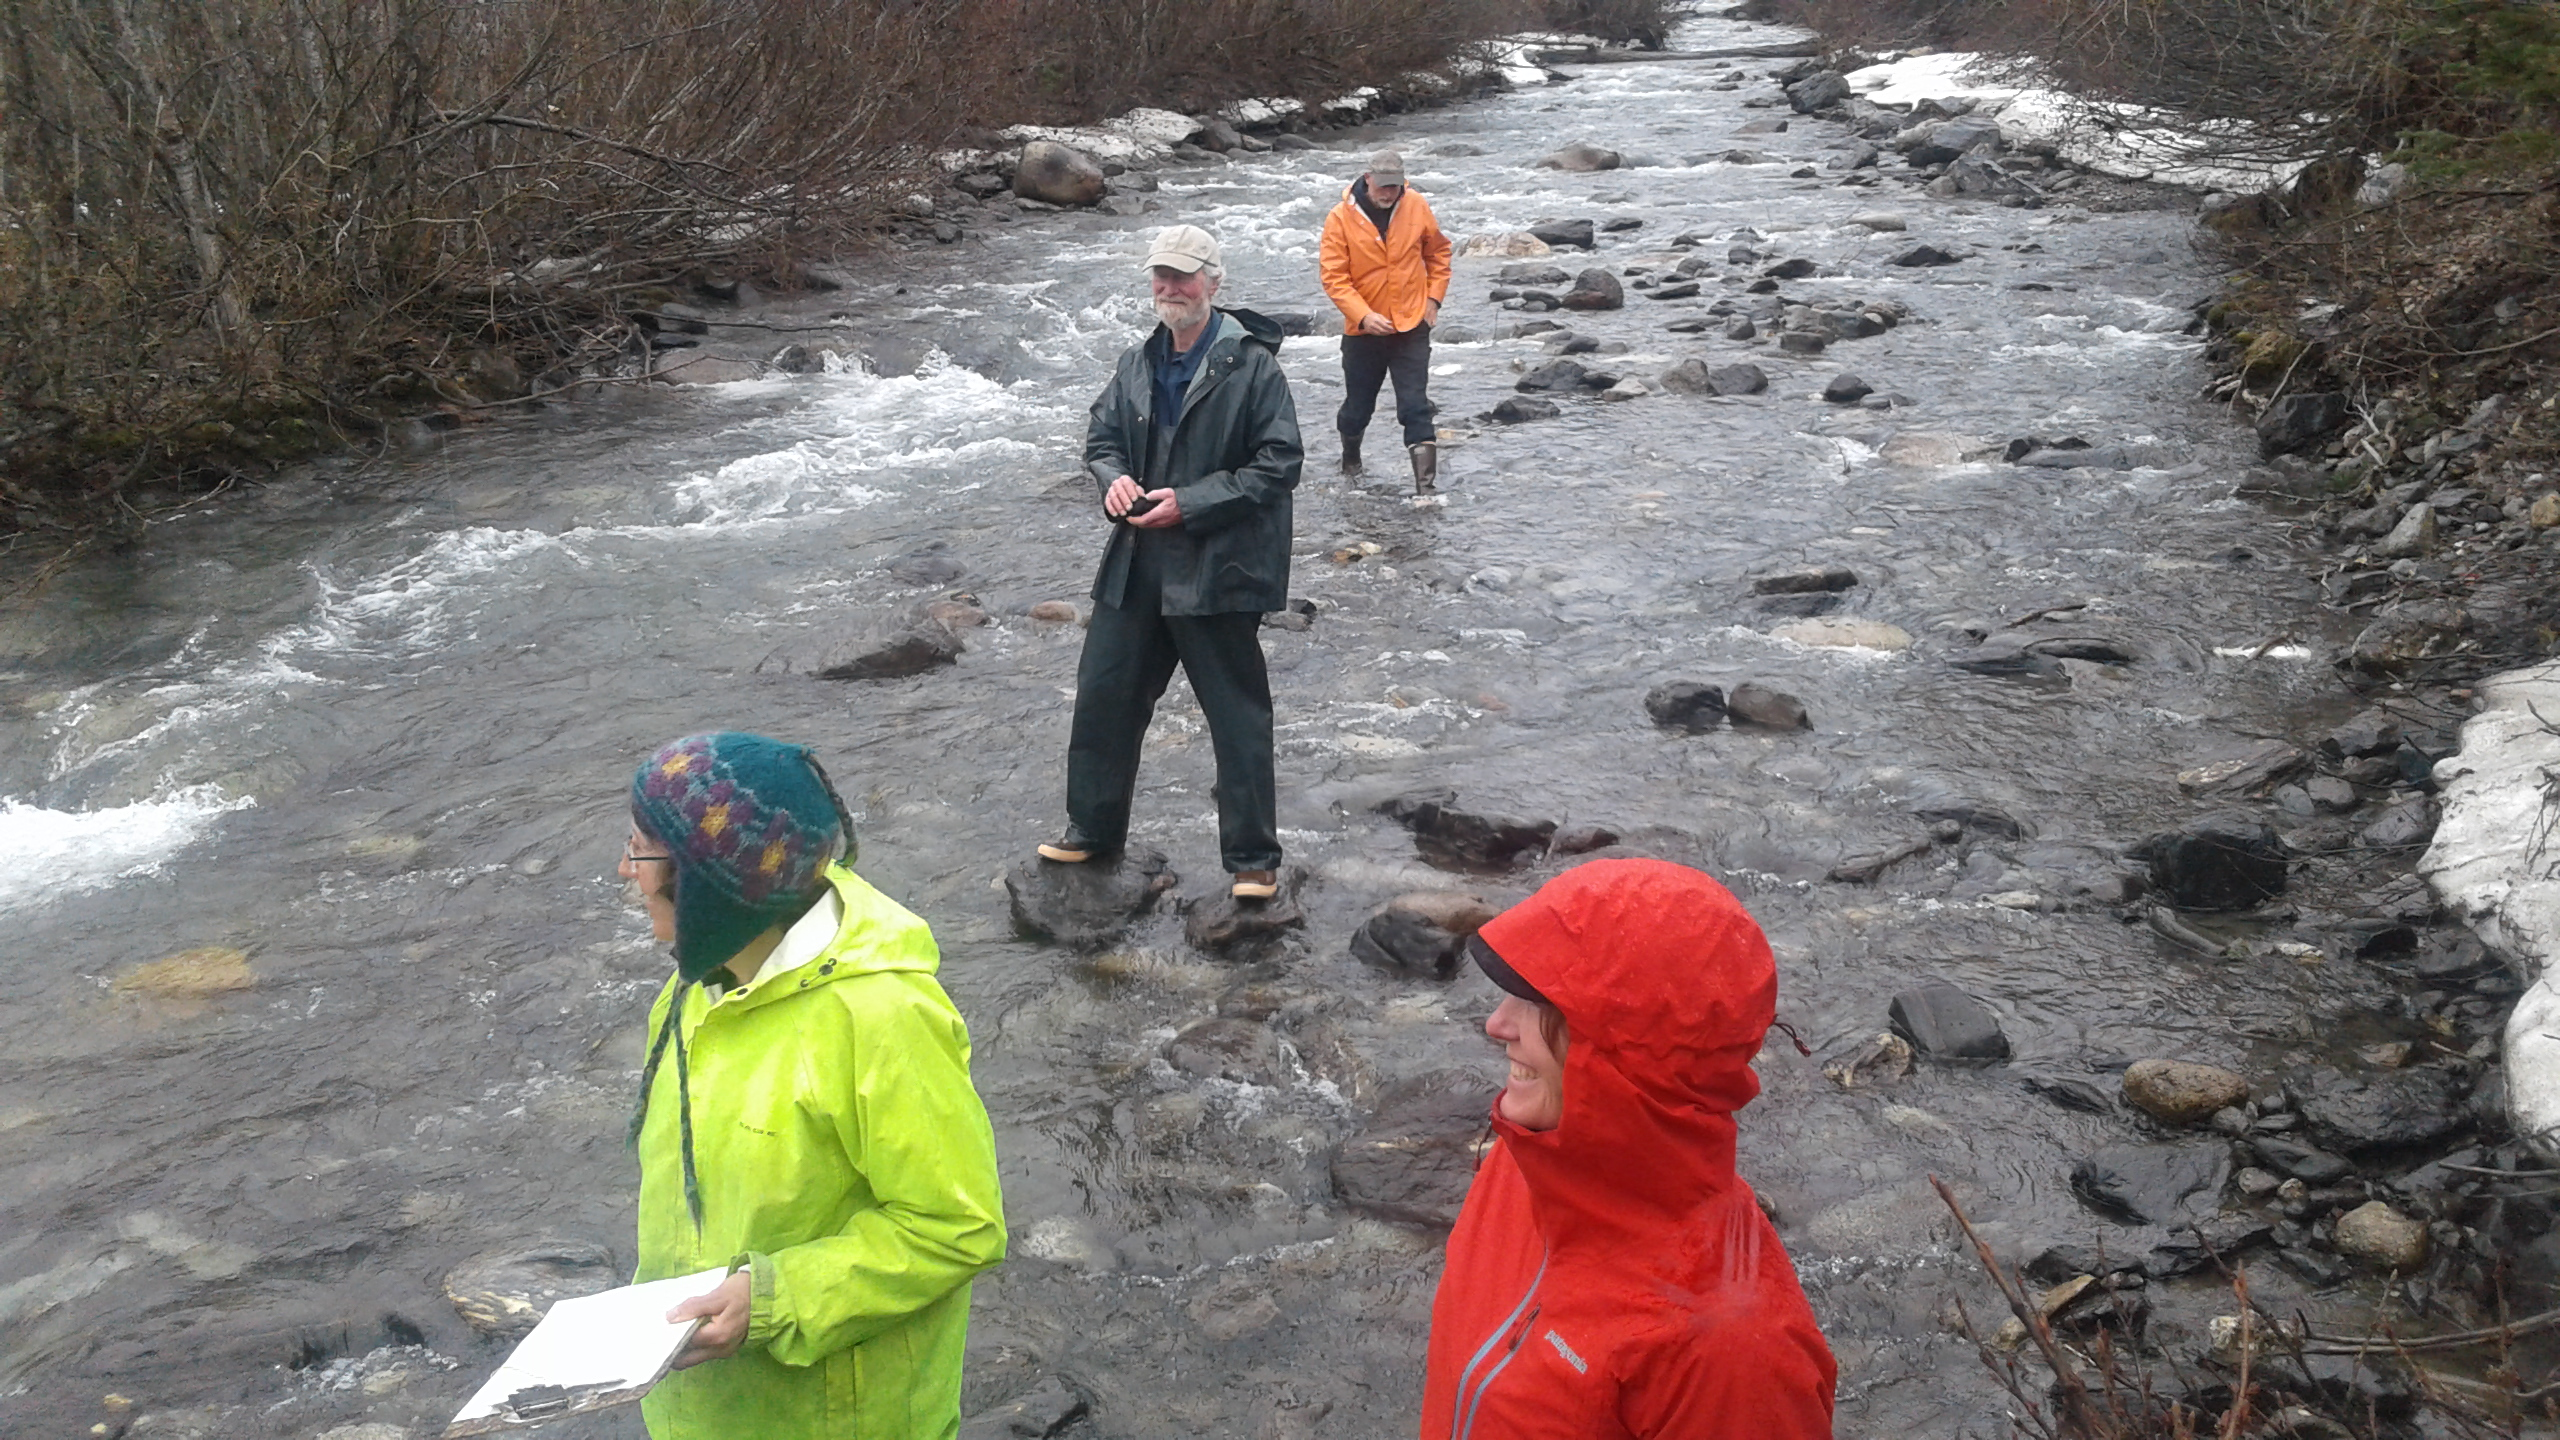 About 20 attendees from Hoonah, Sitka, Skagway and Wrangell came to Klukwan to practice stream monitoring. (Photo courtesy Jessica Kayser Forster)